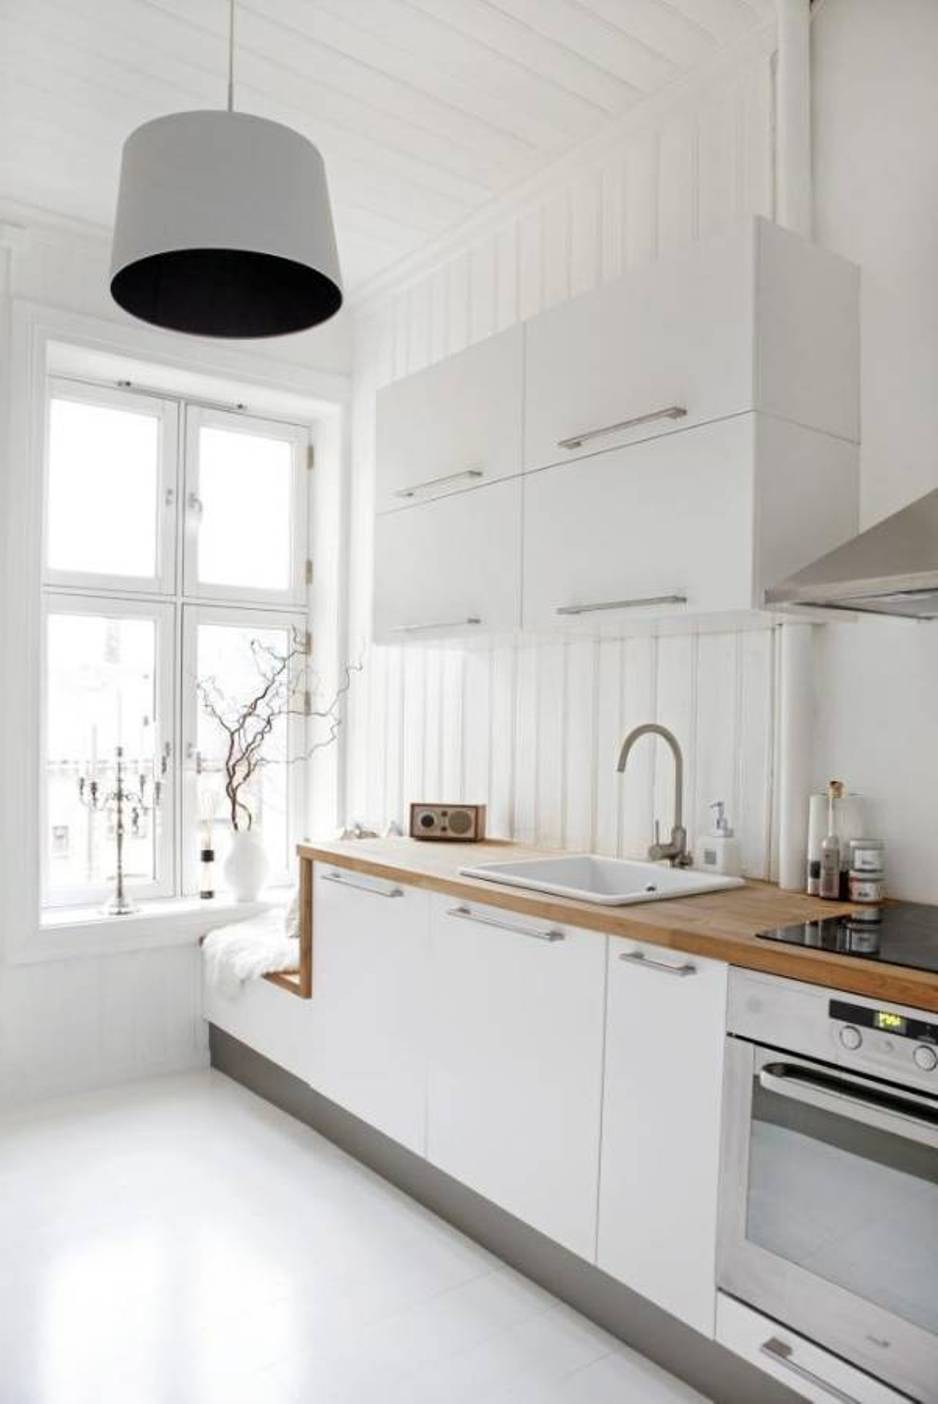 10 amazing scandinavian kitchen interior design ideas for Ameublement decoration